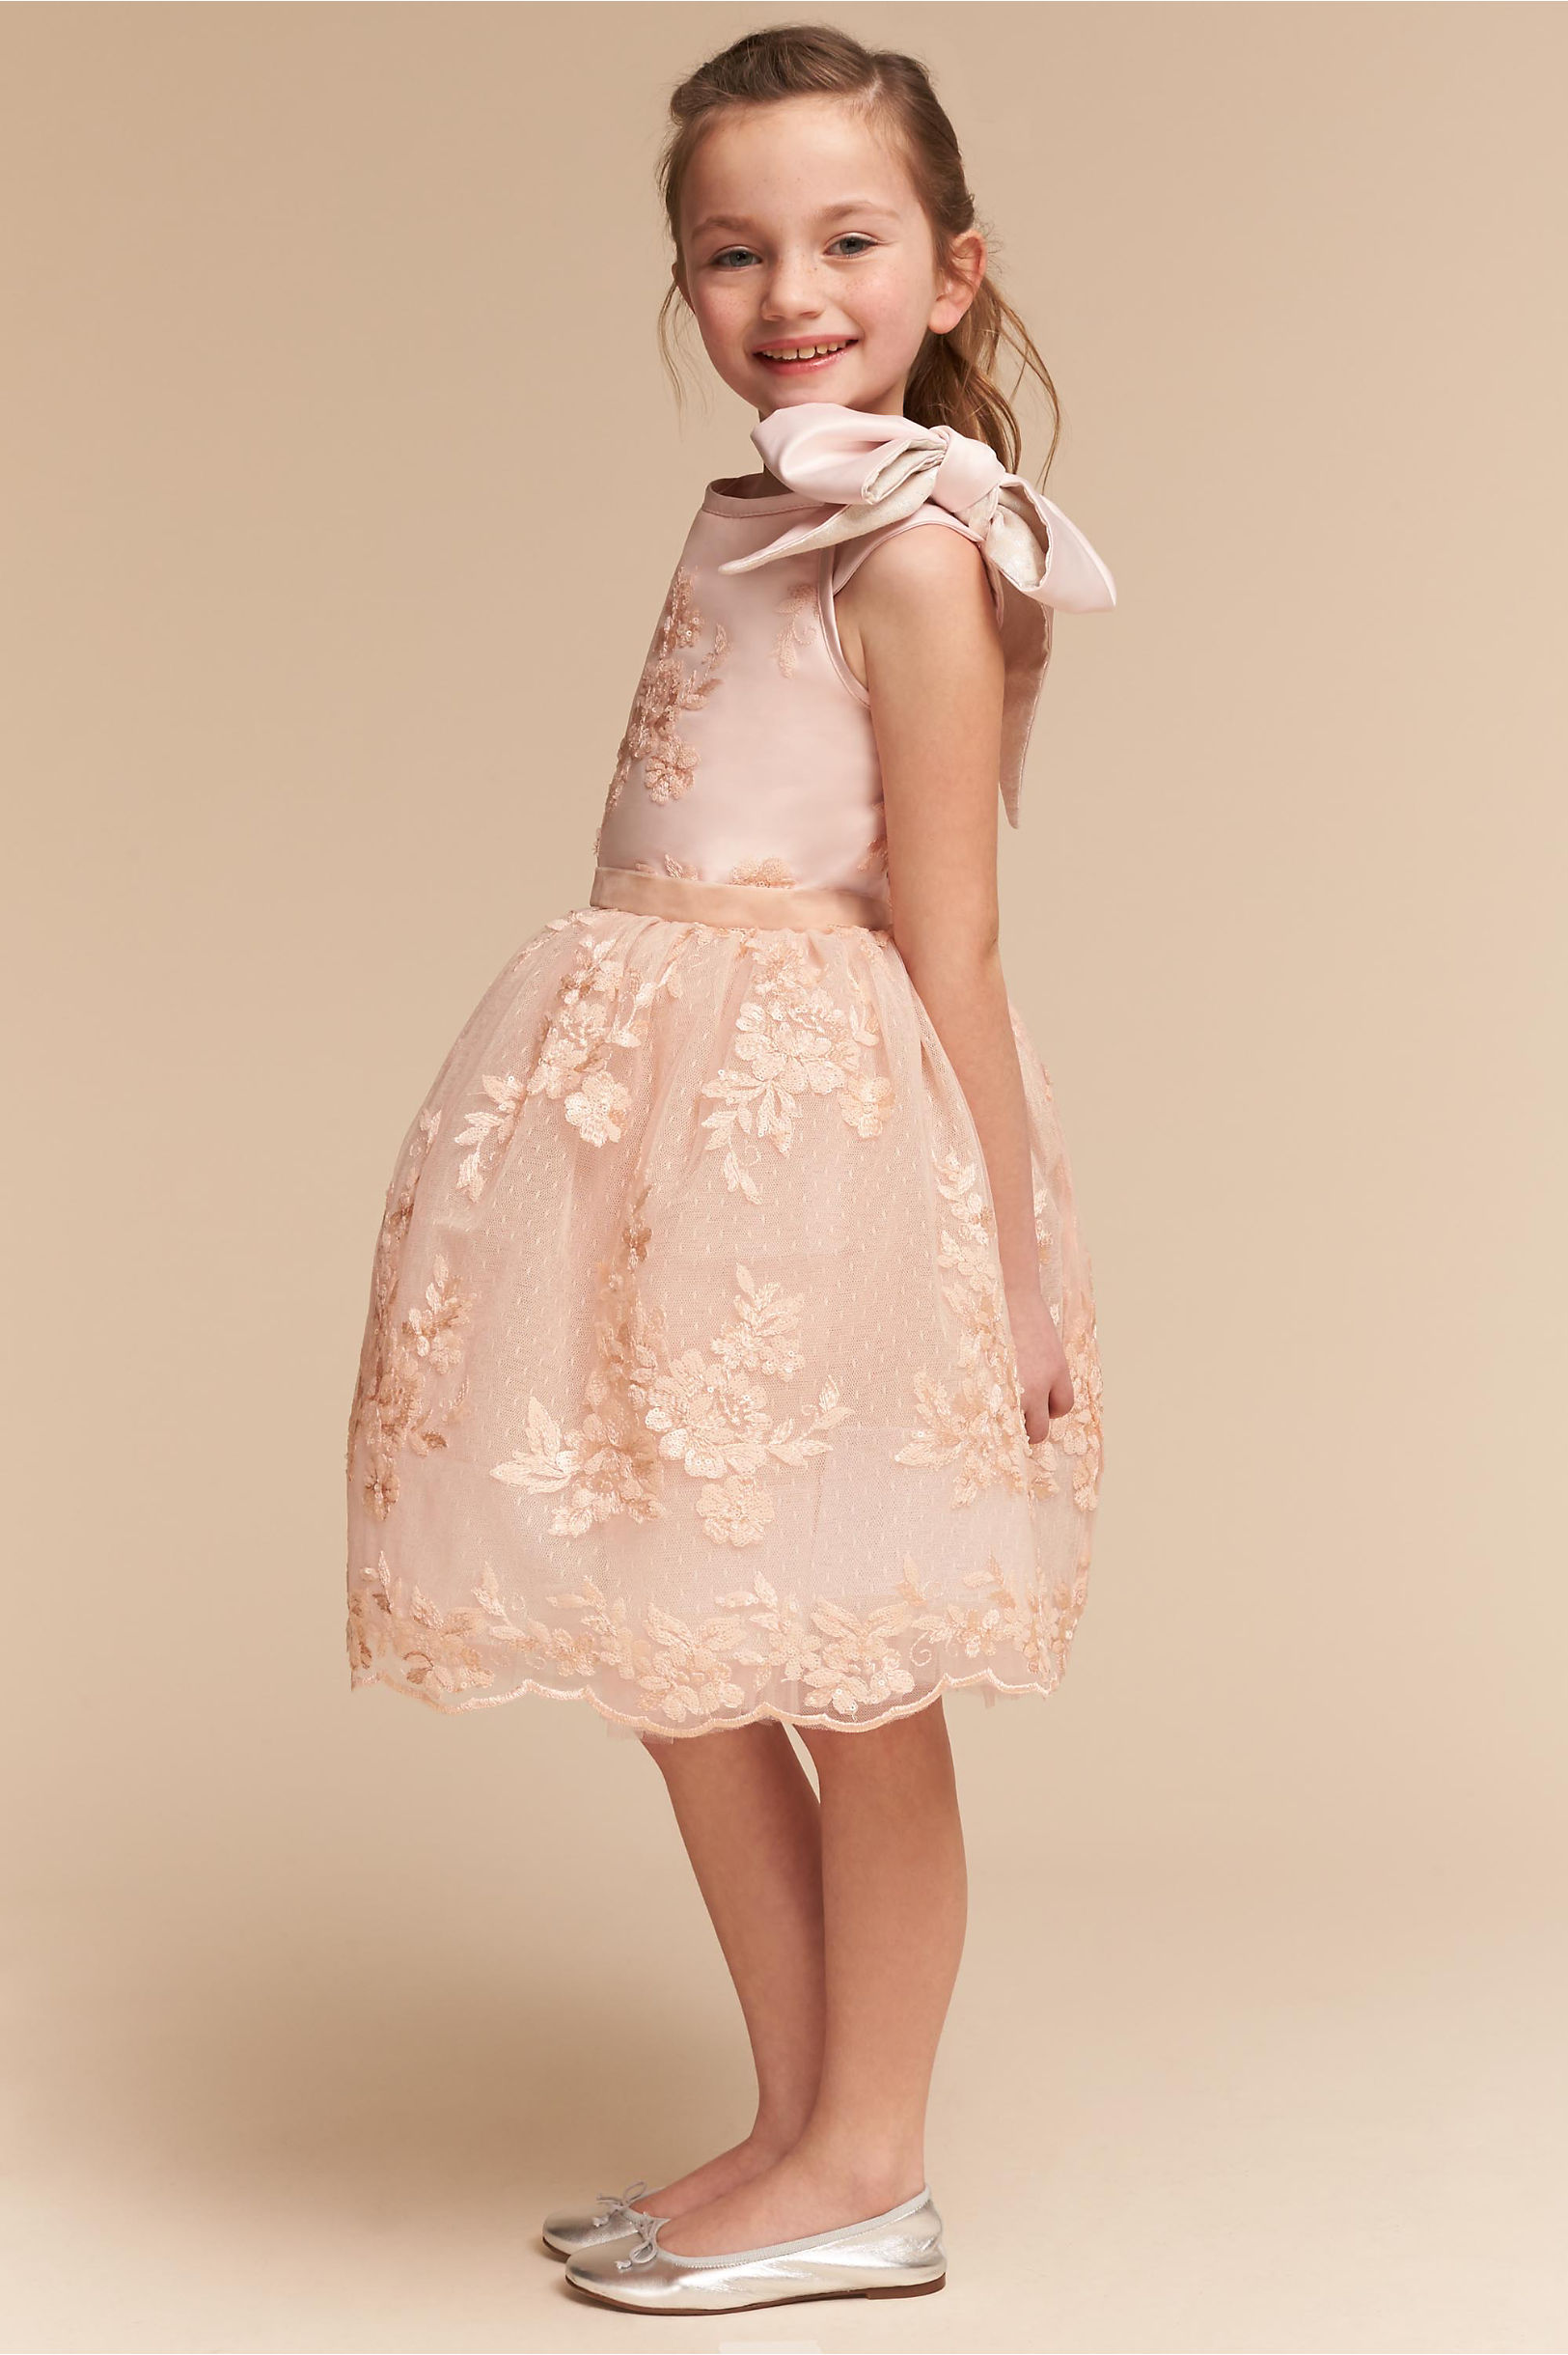 Flower Girl Dresses - Ivory &amp- White Flower Girls&-39- Dresses - BHLDN